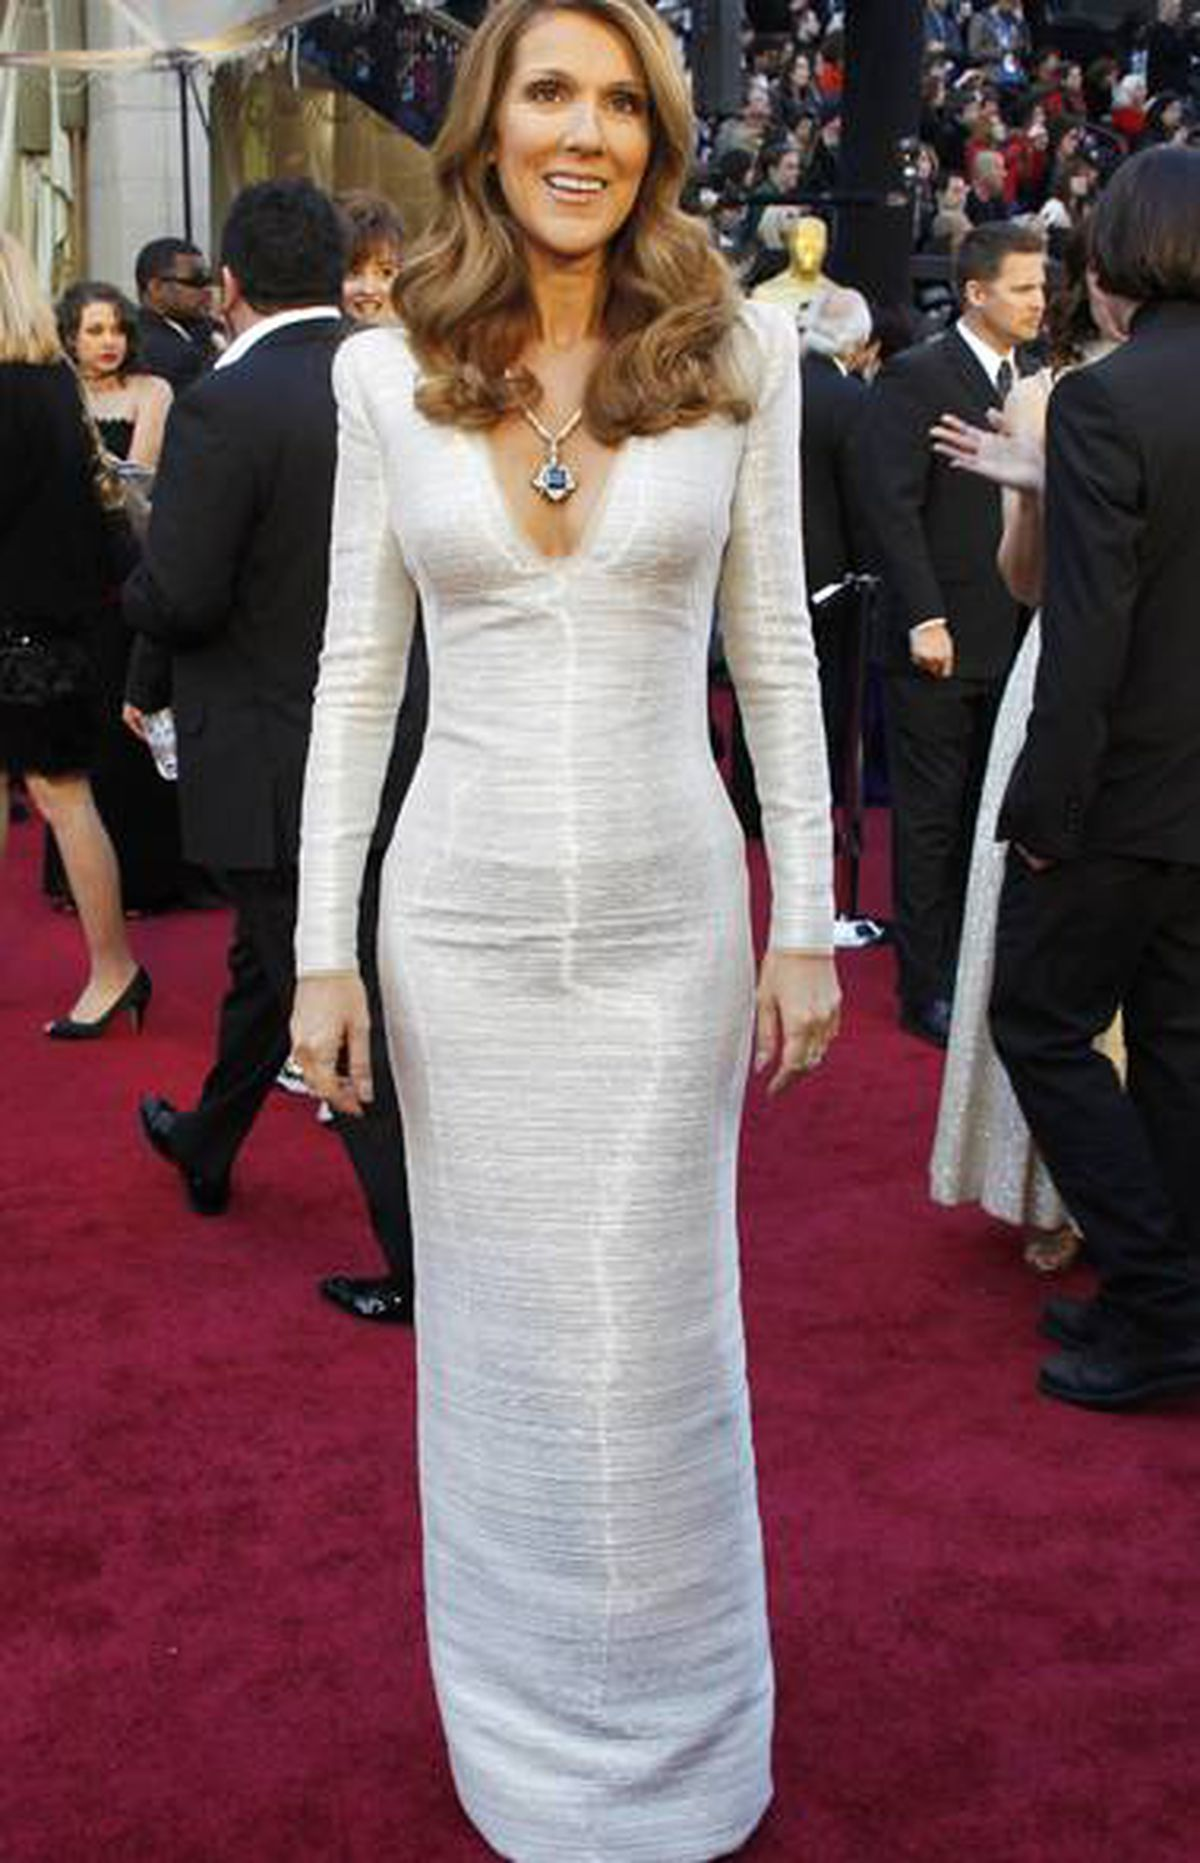 Singer Celine Dion who arrives at the 83rd Academy Awards in Hollywood, California, February 27, 2011.